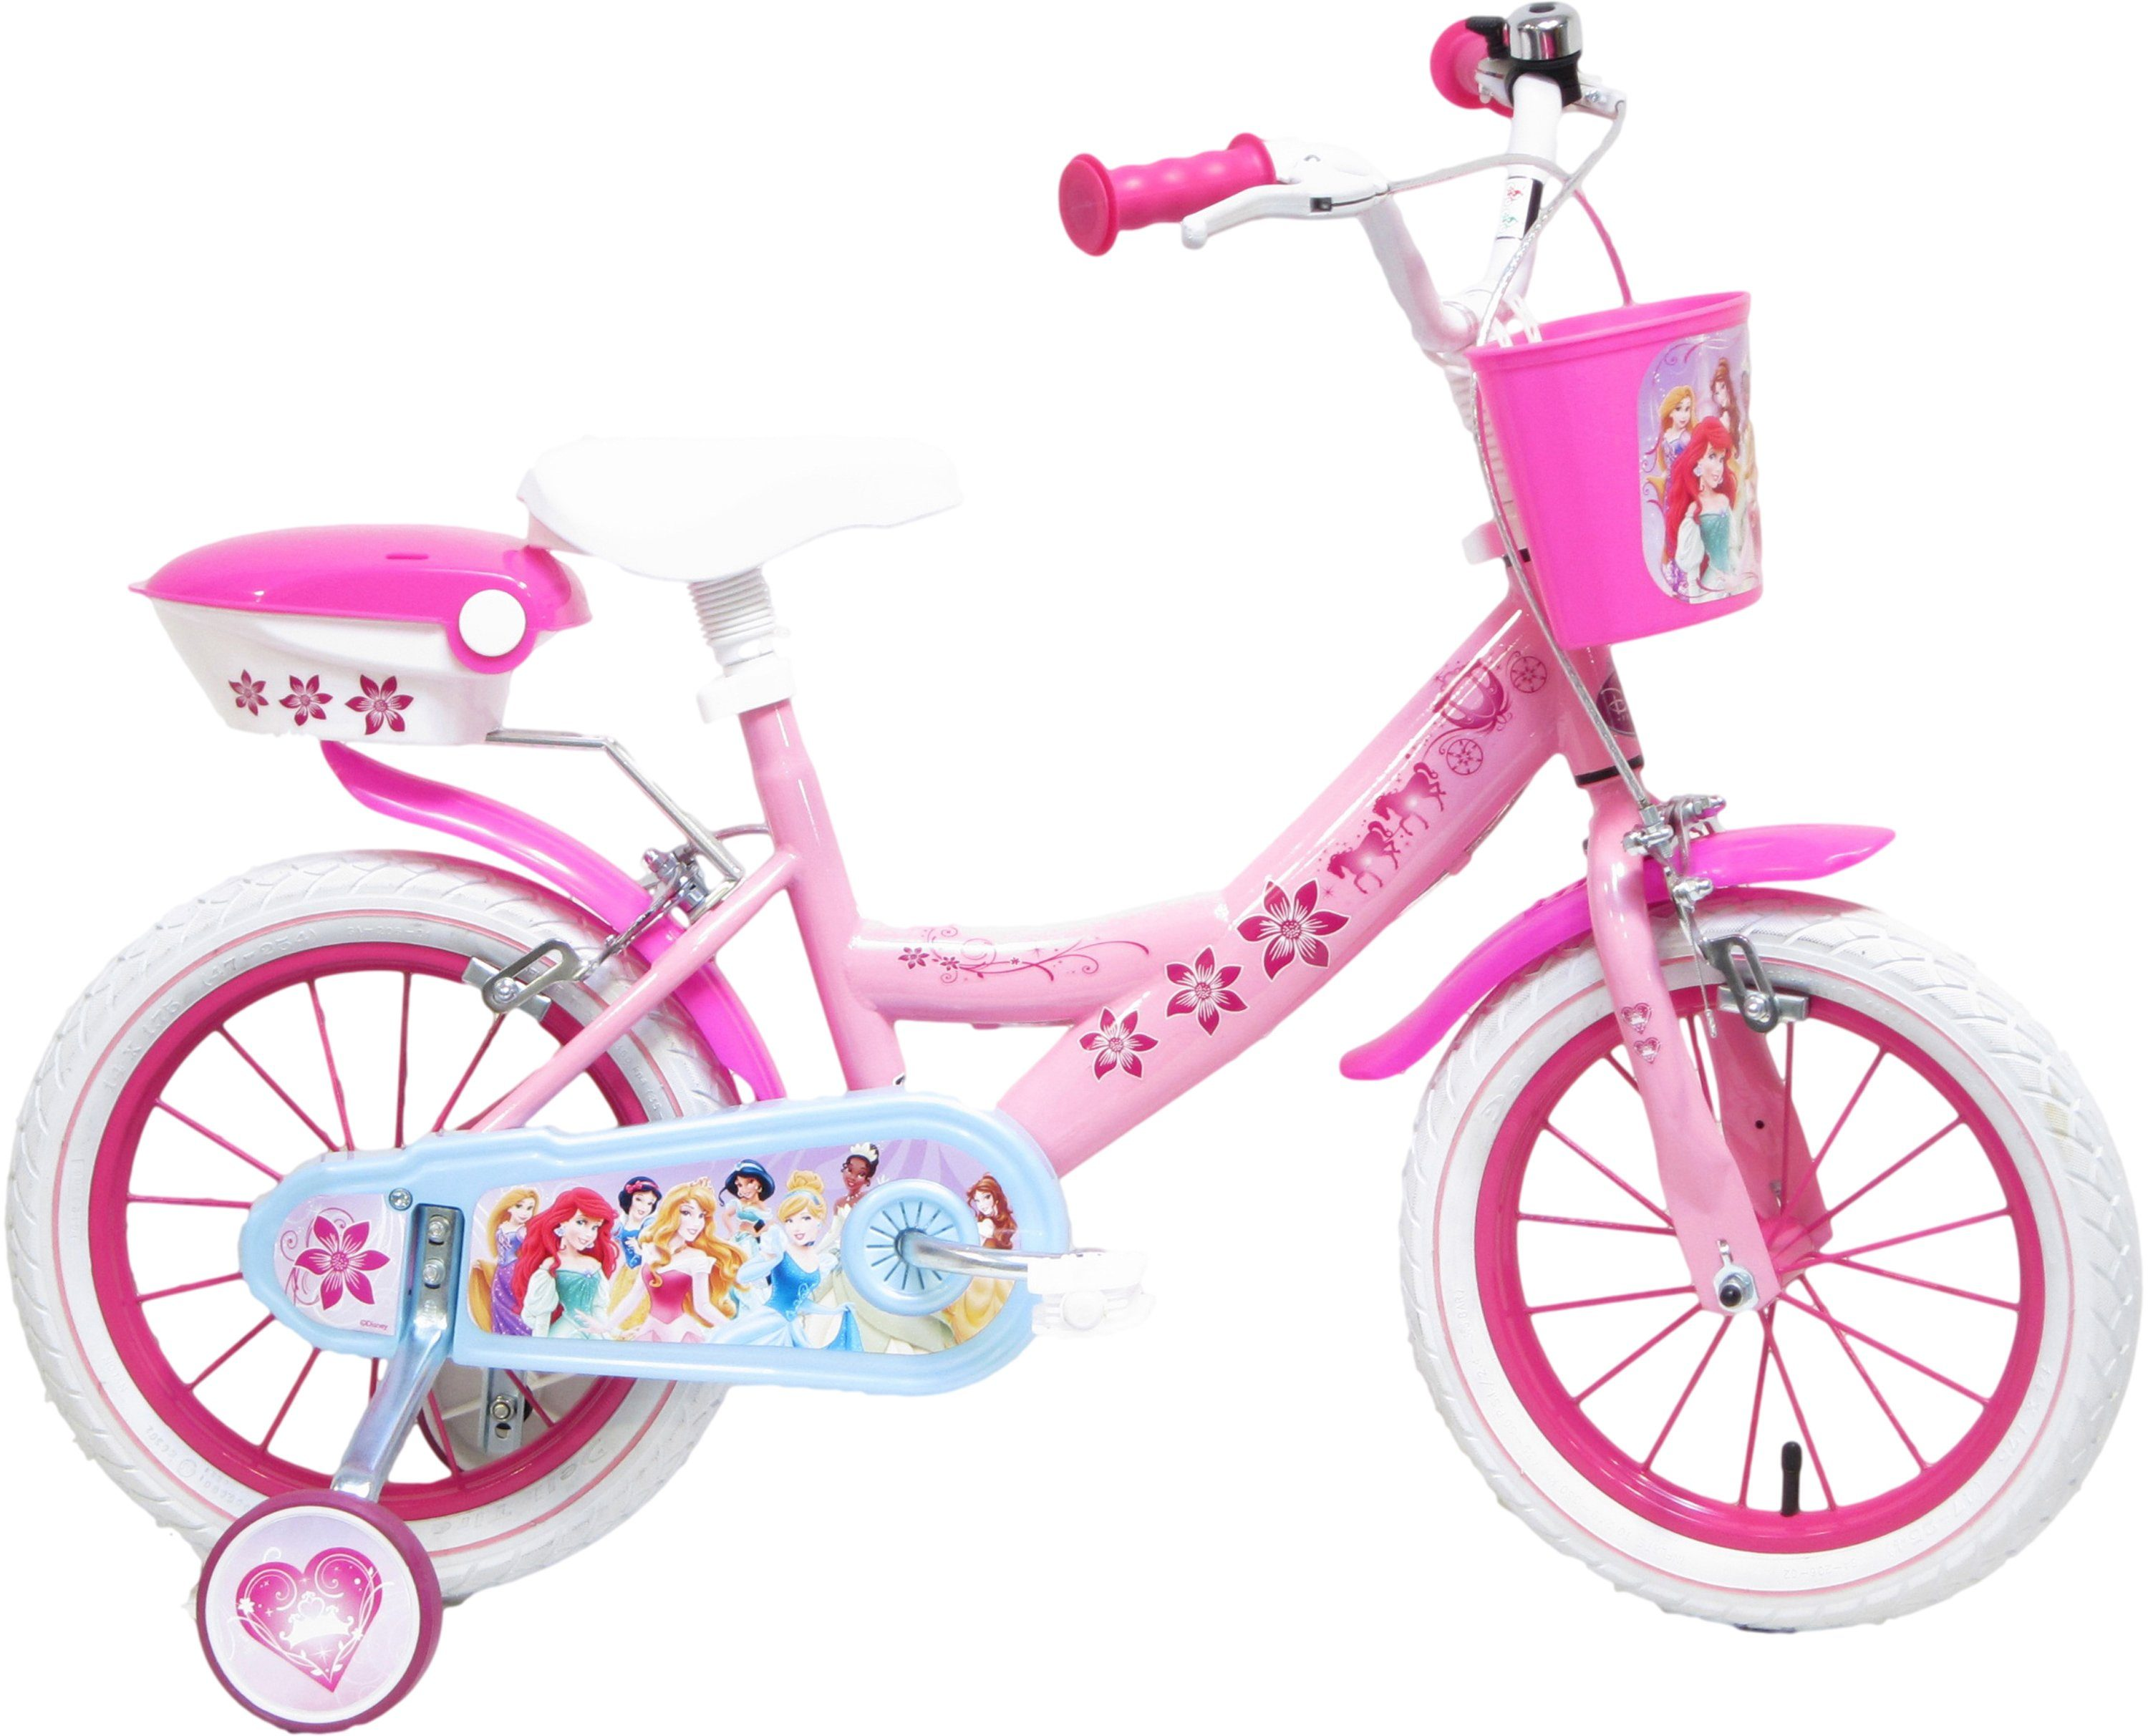 Disney Kinderfahrrad »Princess«, 1 Gang